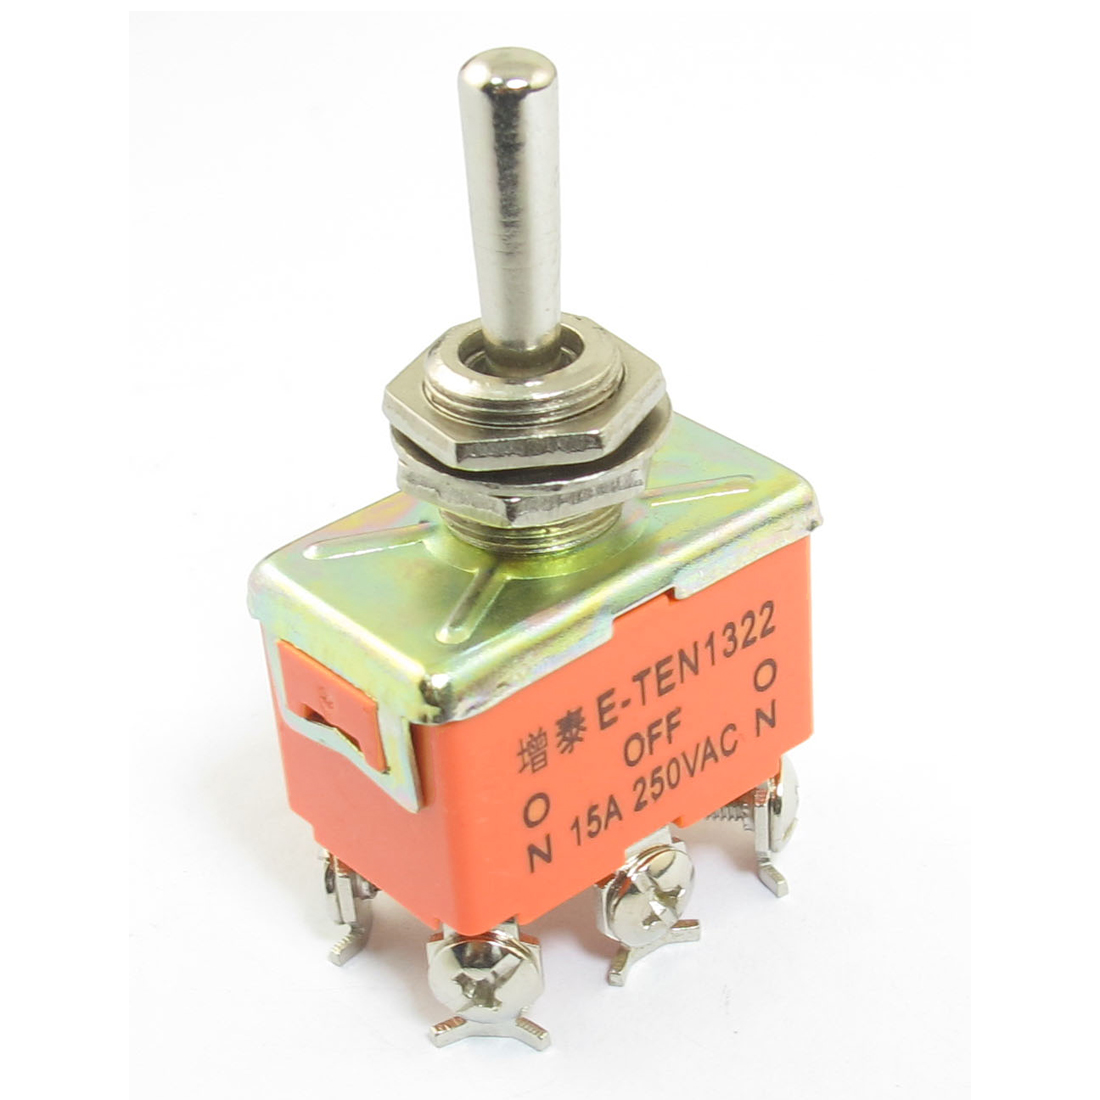 AC 250V 15A 6 Screw Terminals ON/OFF/ON 3 Position DPDT Self Latching Rocker Toggle Switch